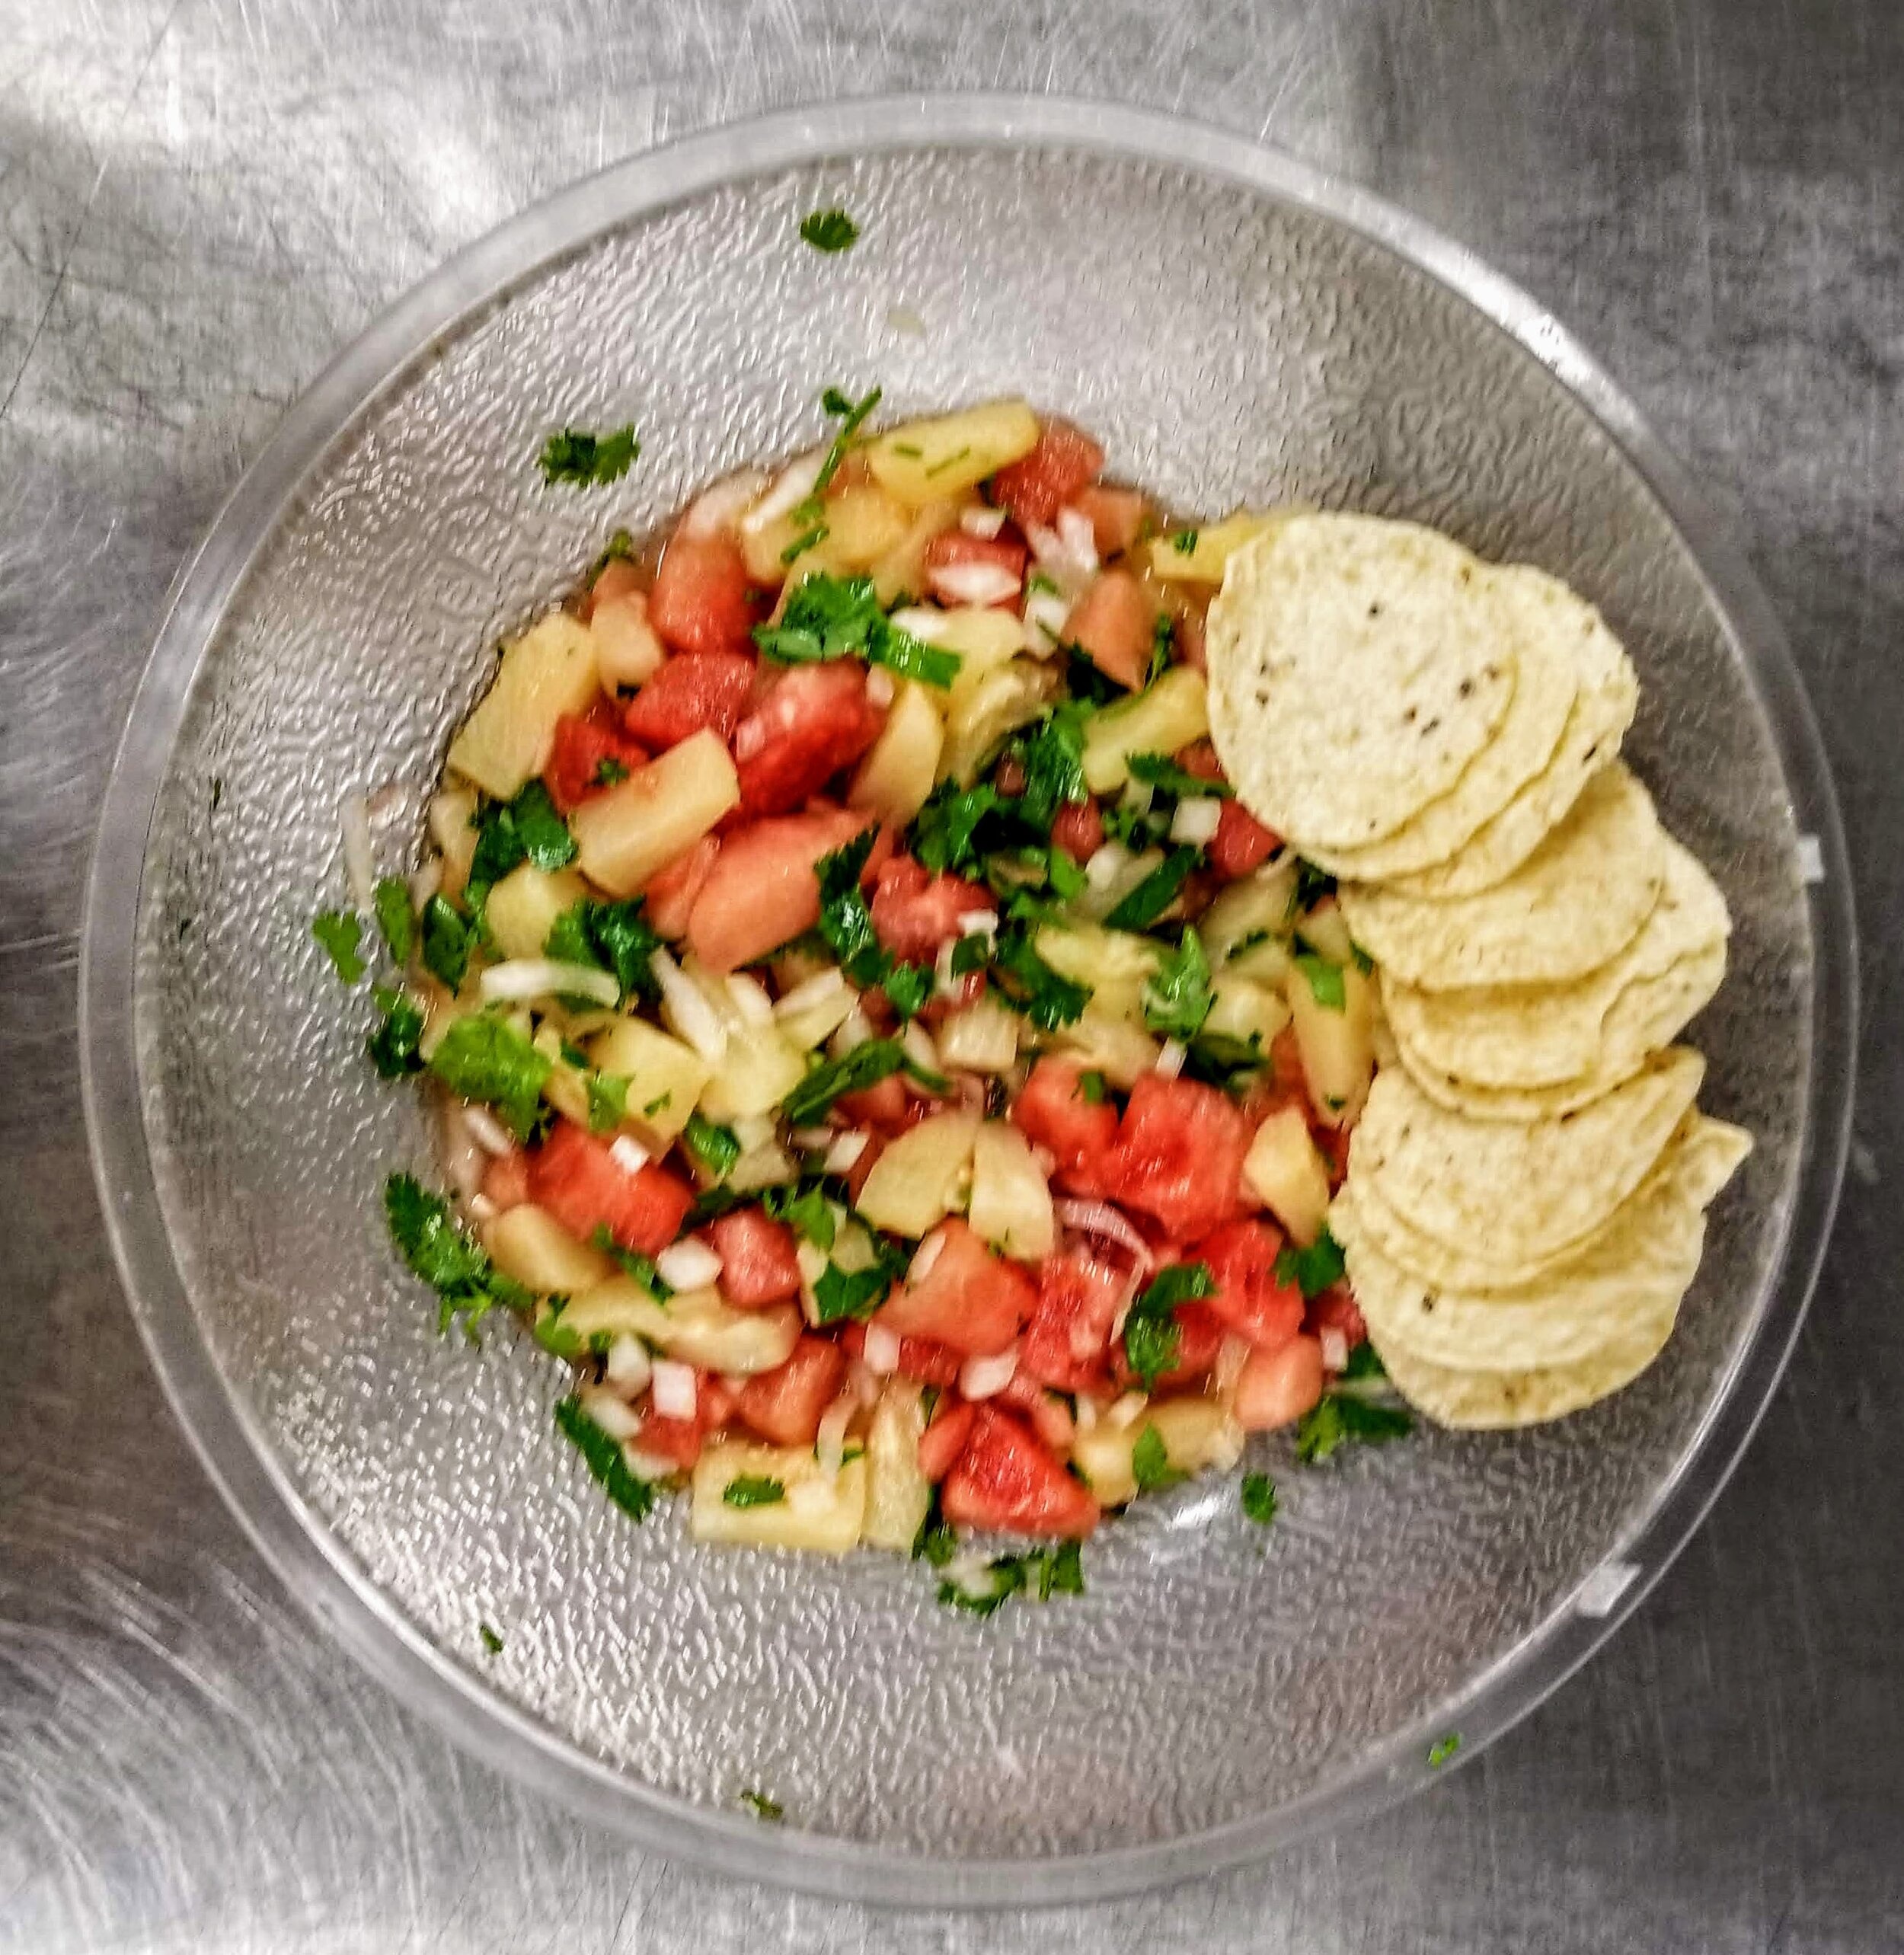 Watermelon and pineapple salsa at Lake Travis Middle School.